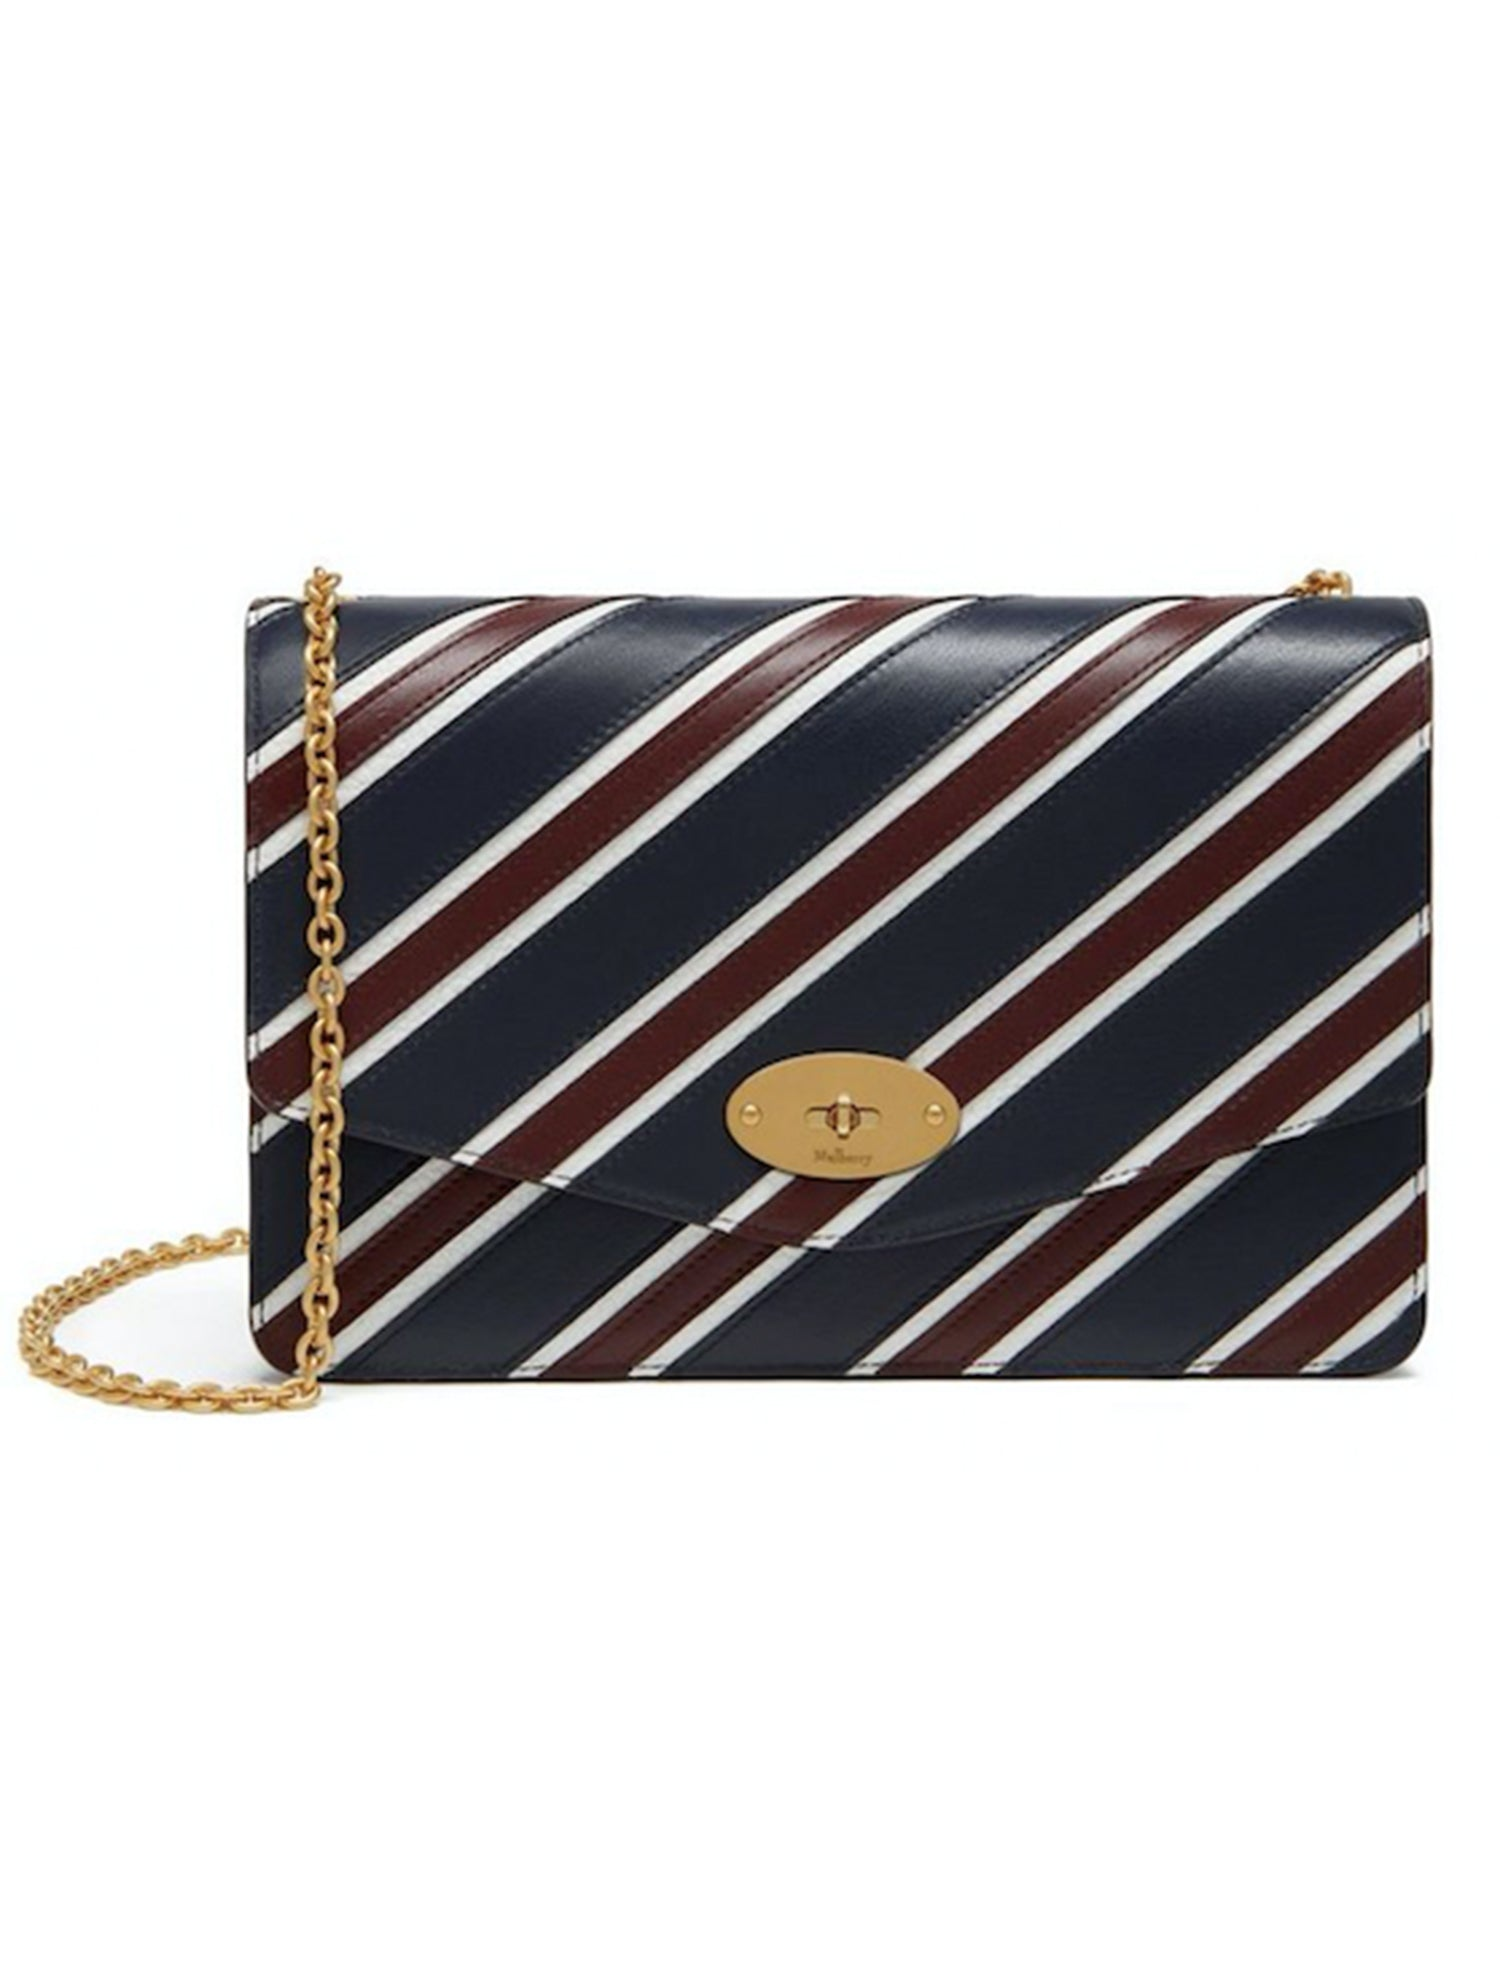 Mulberry SS2017 Striped Darley Bag